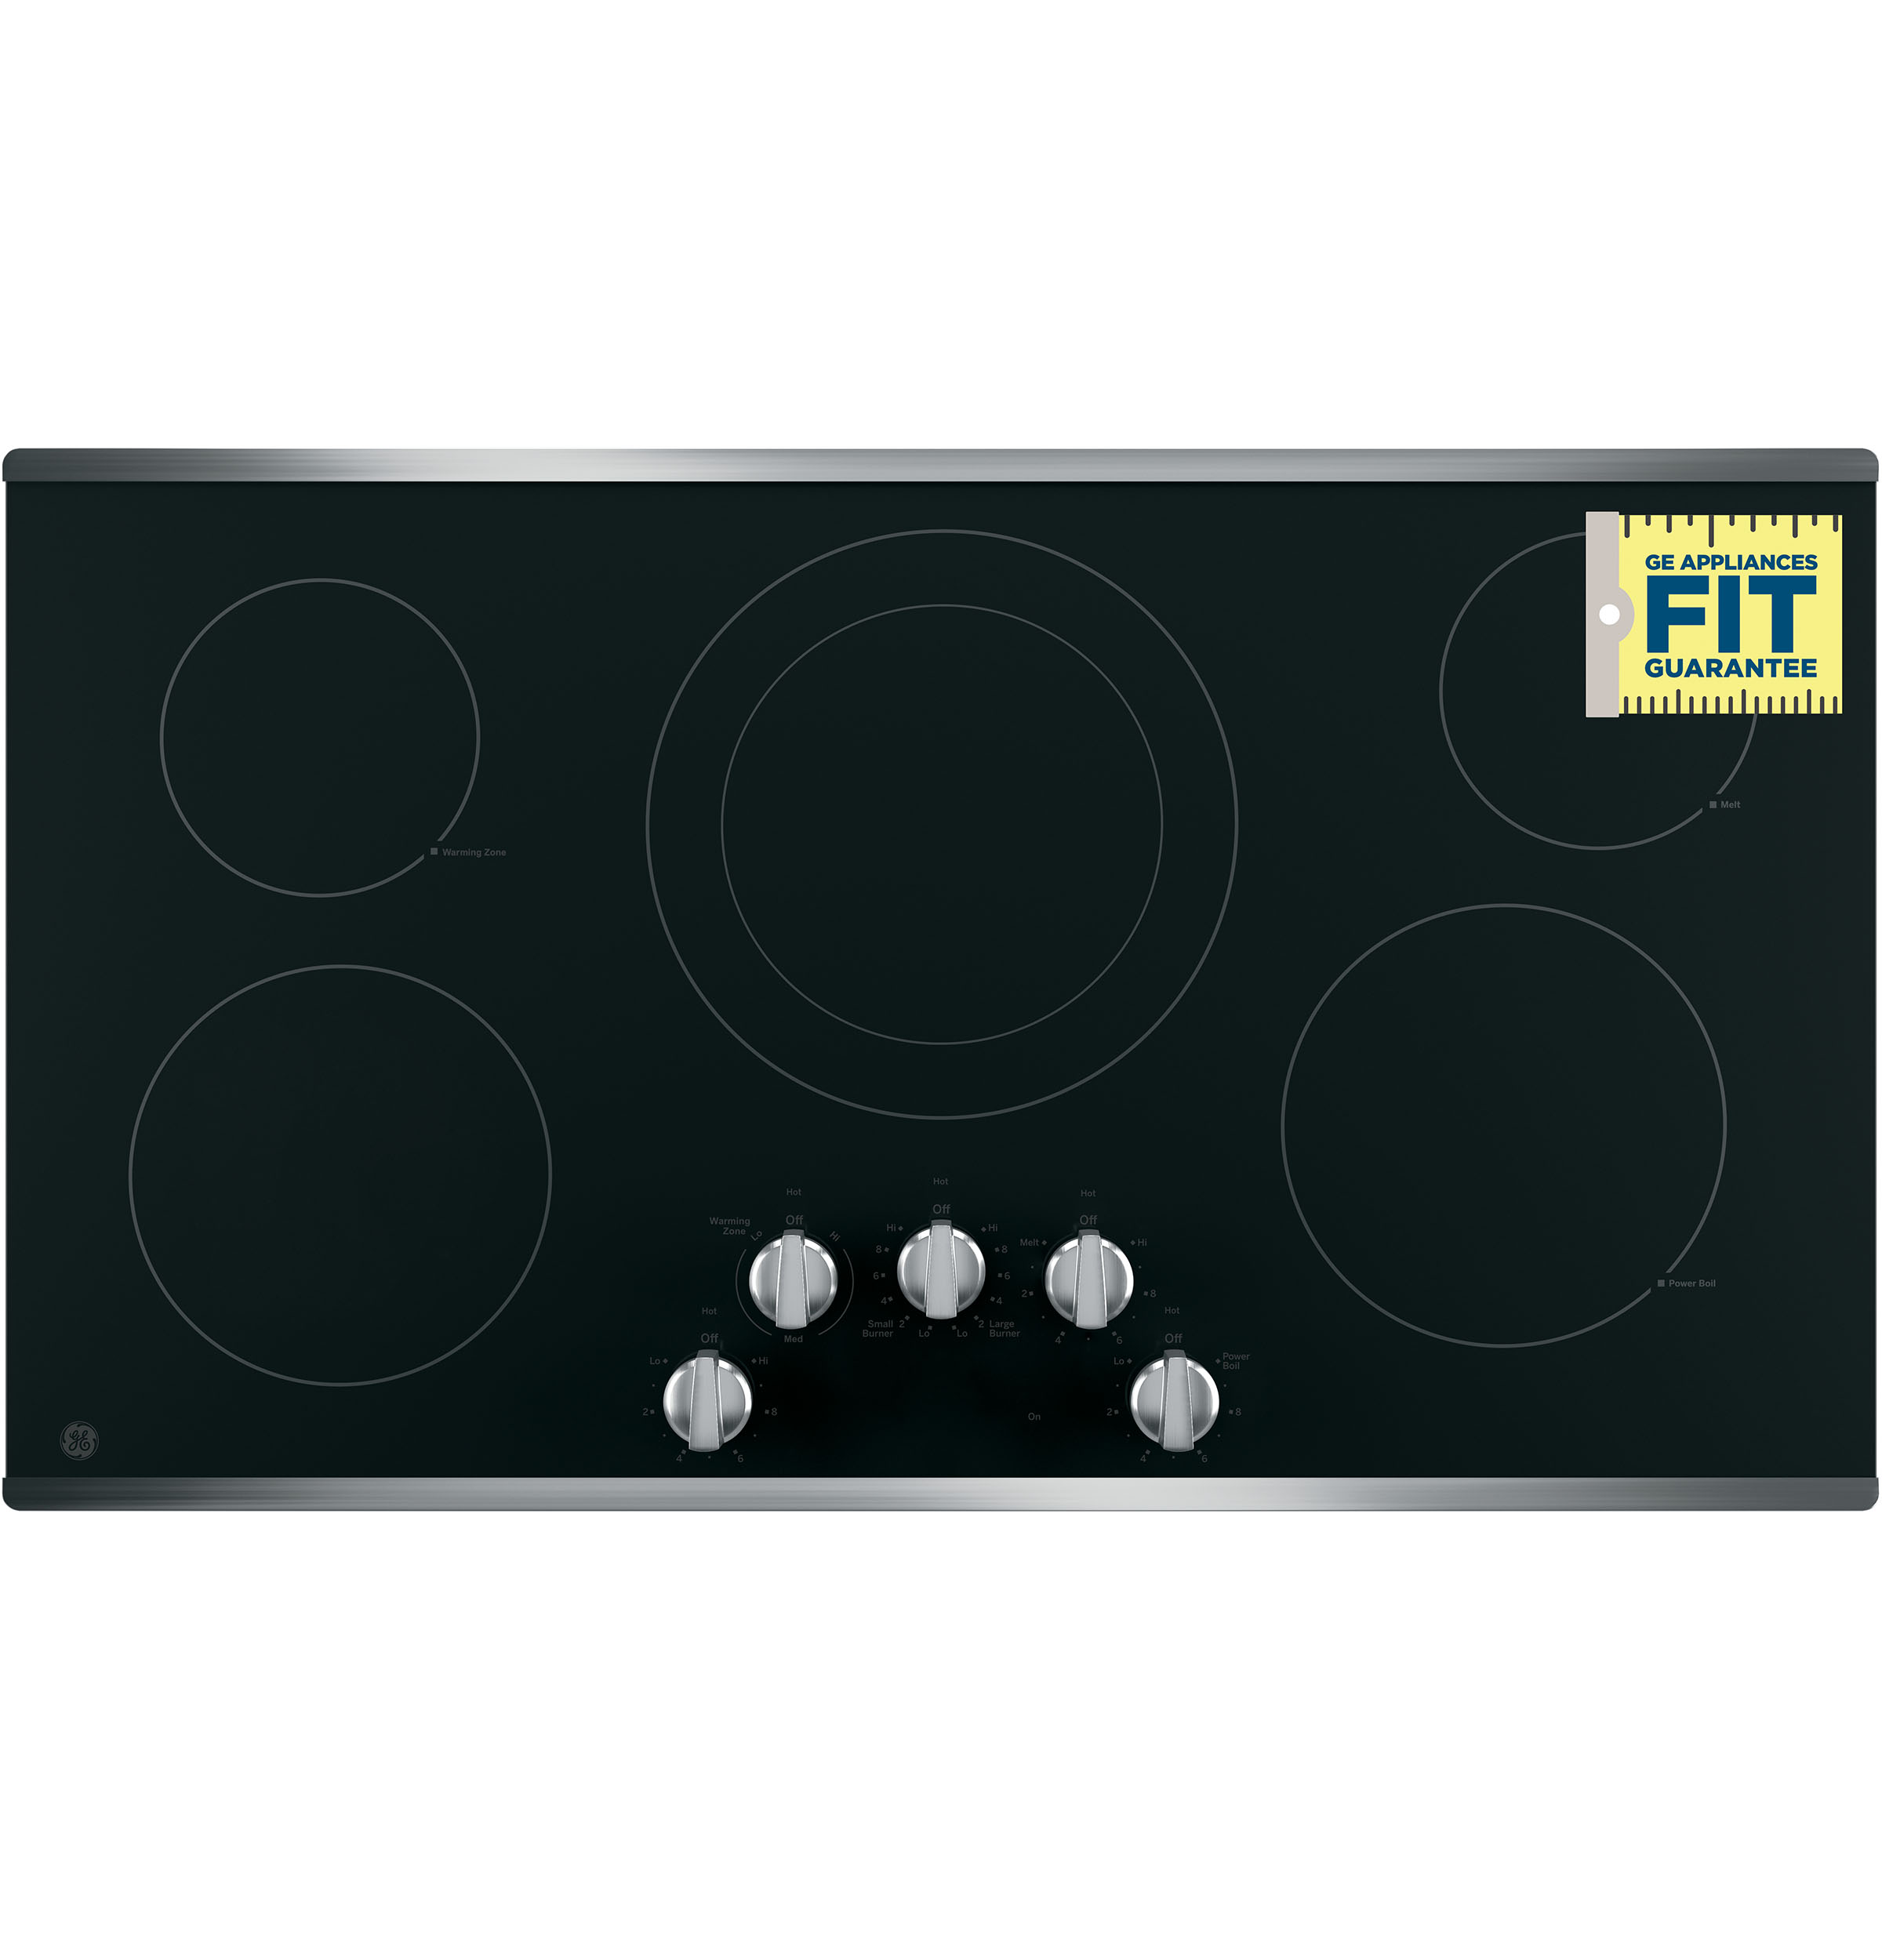 "Model: JP3036SLSS | GE GE® 36"" Built-In Knob Control Electric Cooktop"